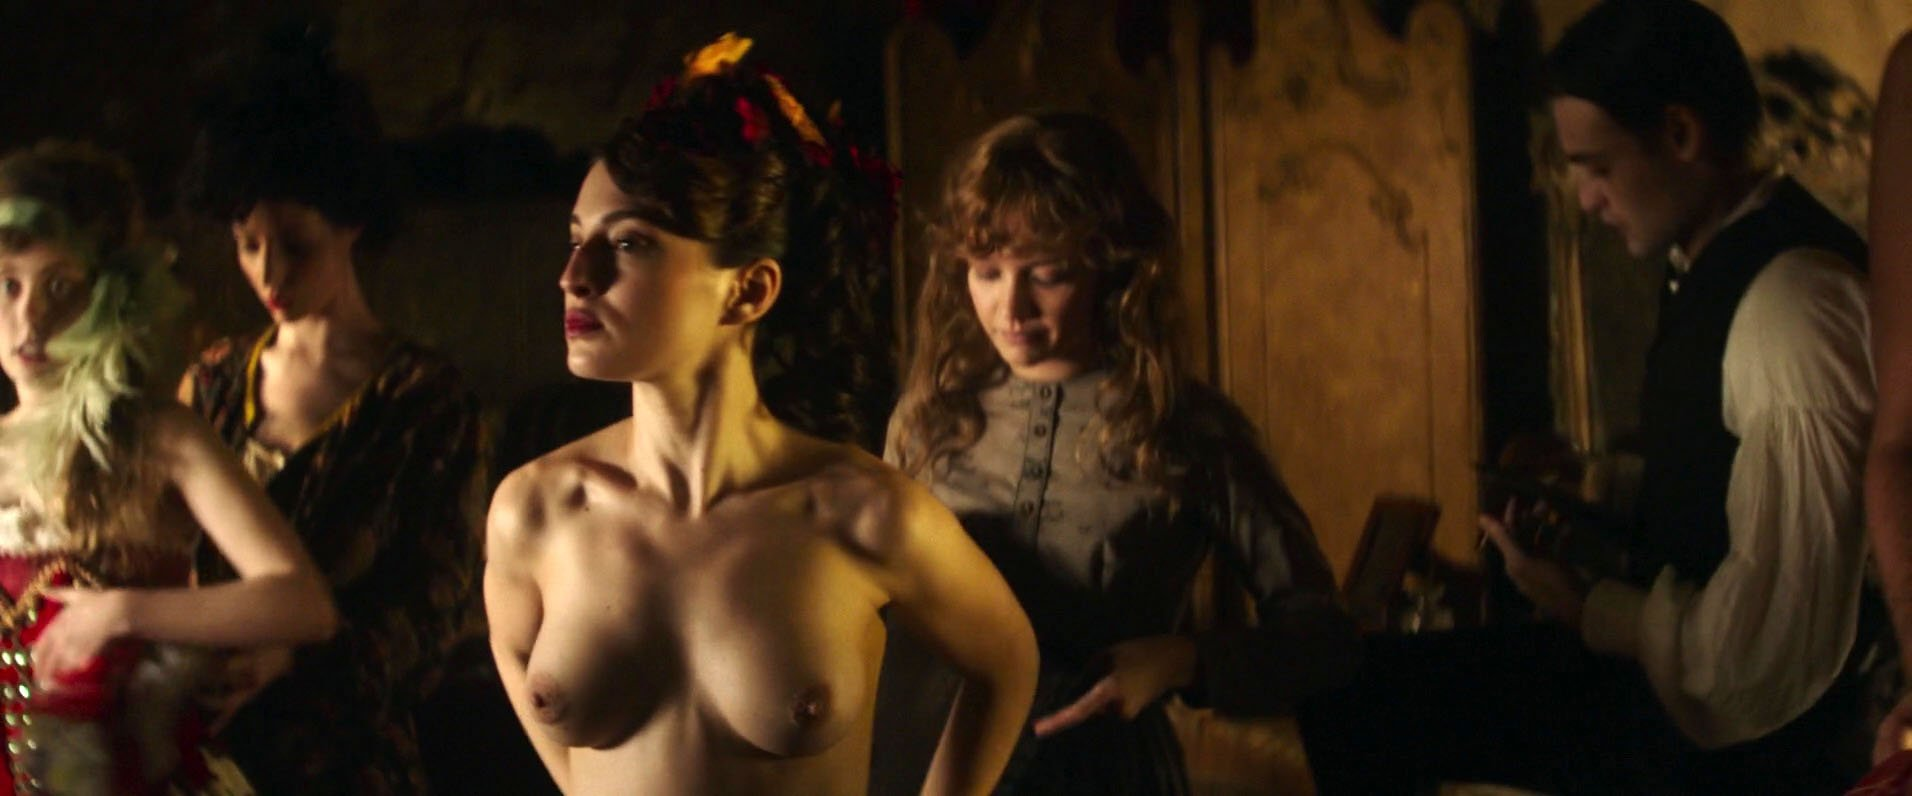 Emily piggford nude sex scene in hemlock grove series 4